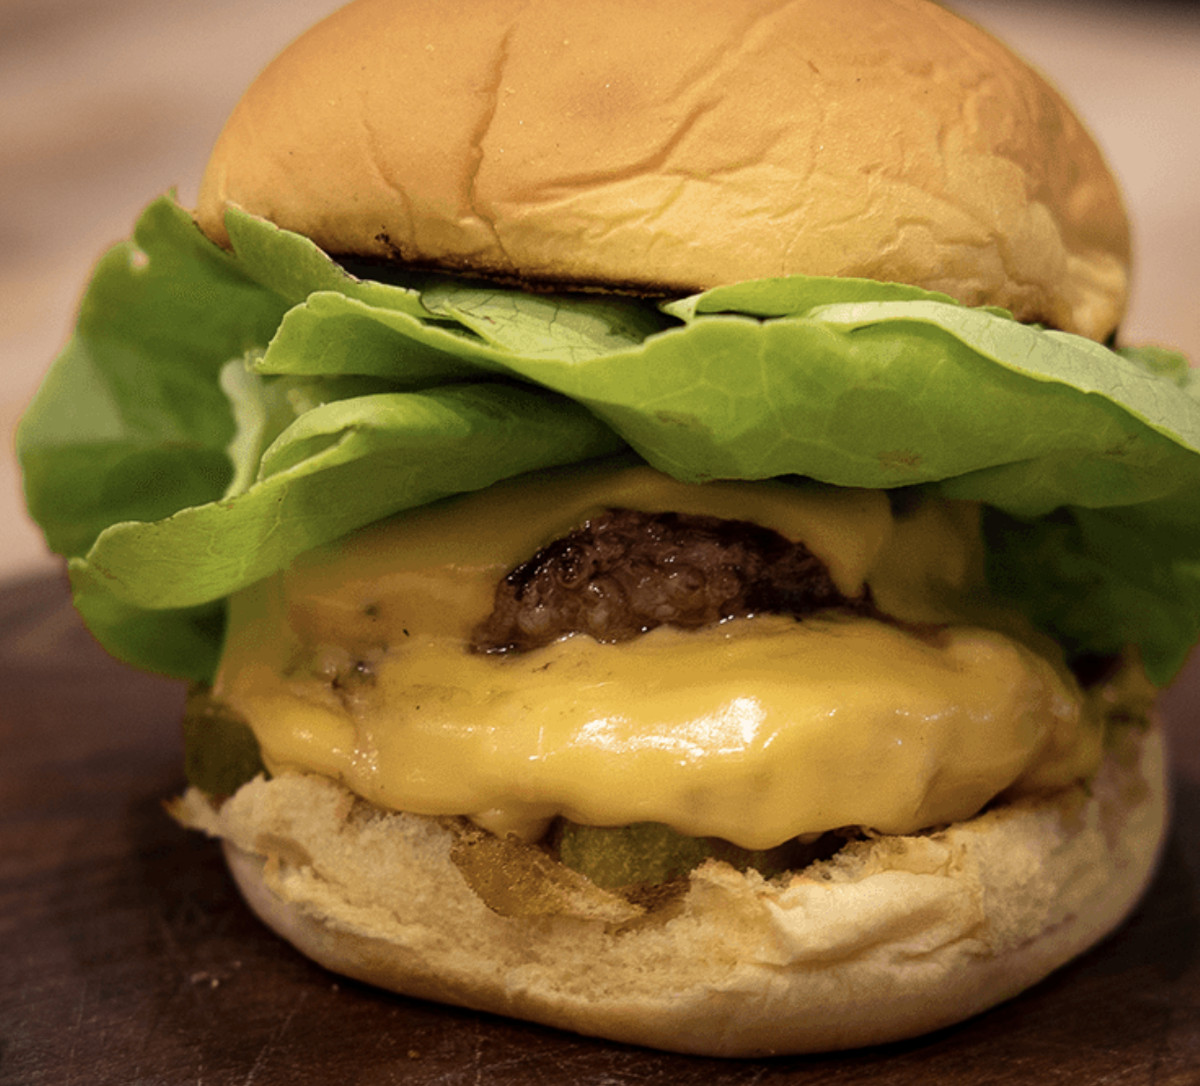 A photo of the double-burger  from Folsom Foods consisting of a burger topped with yellow cheese and lettuce